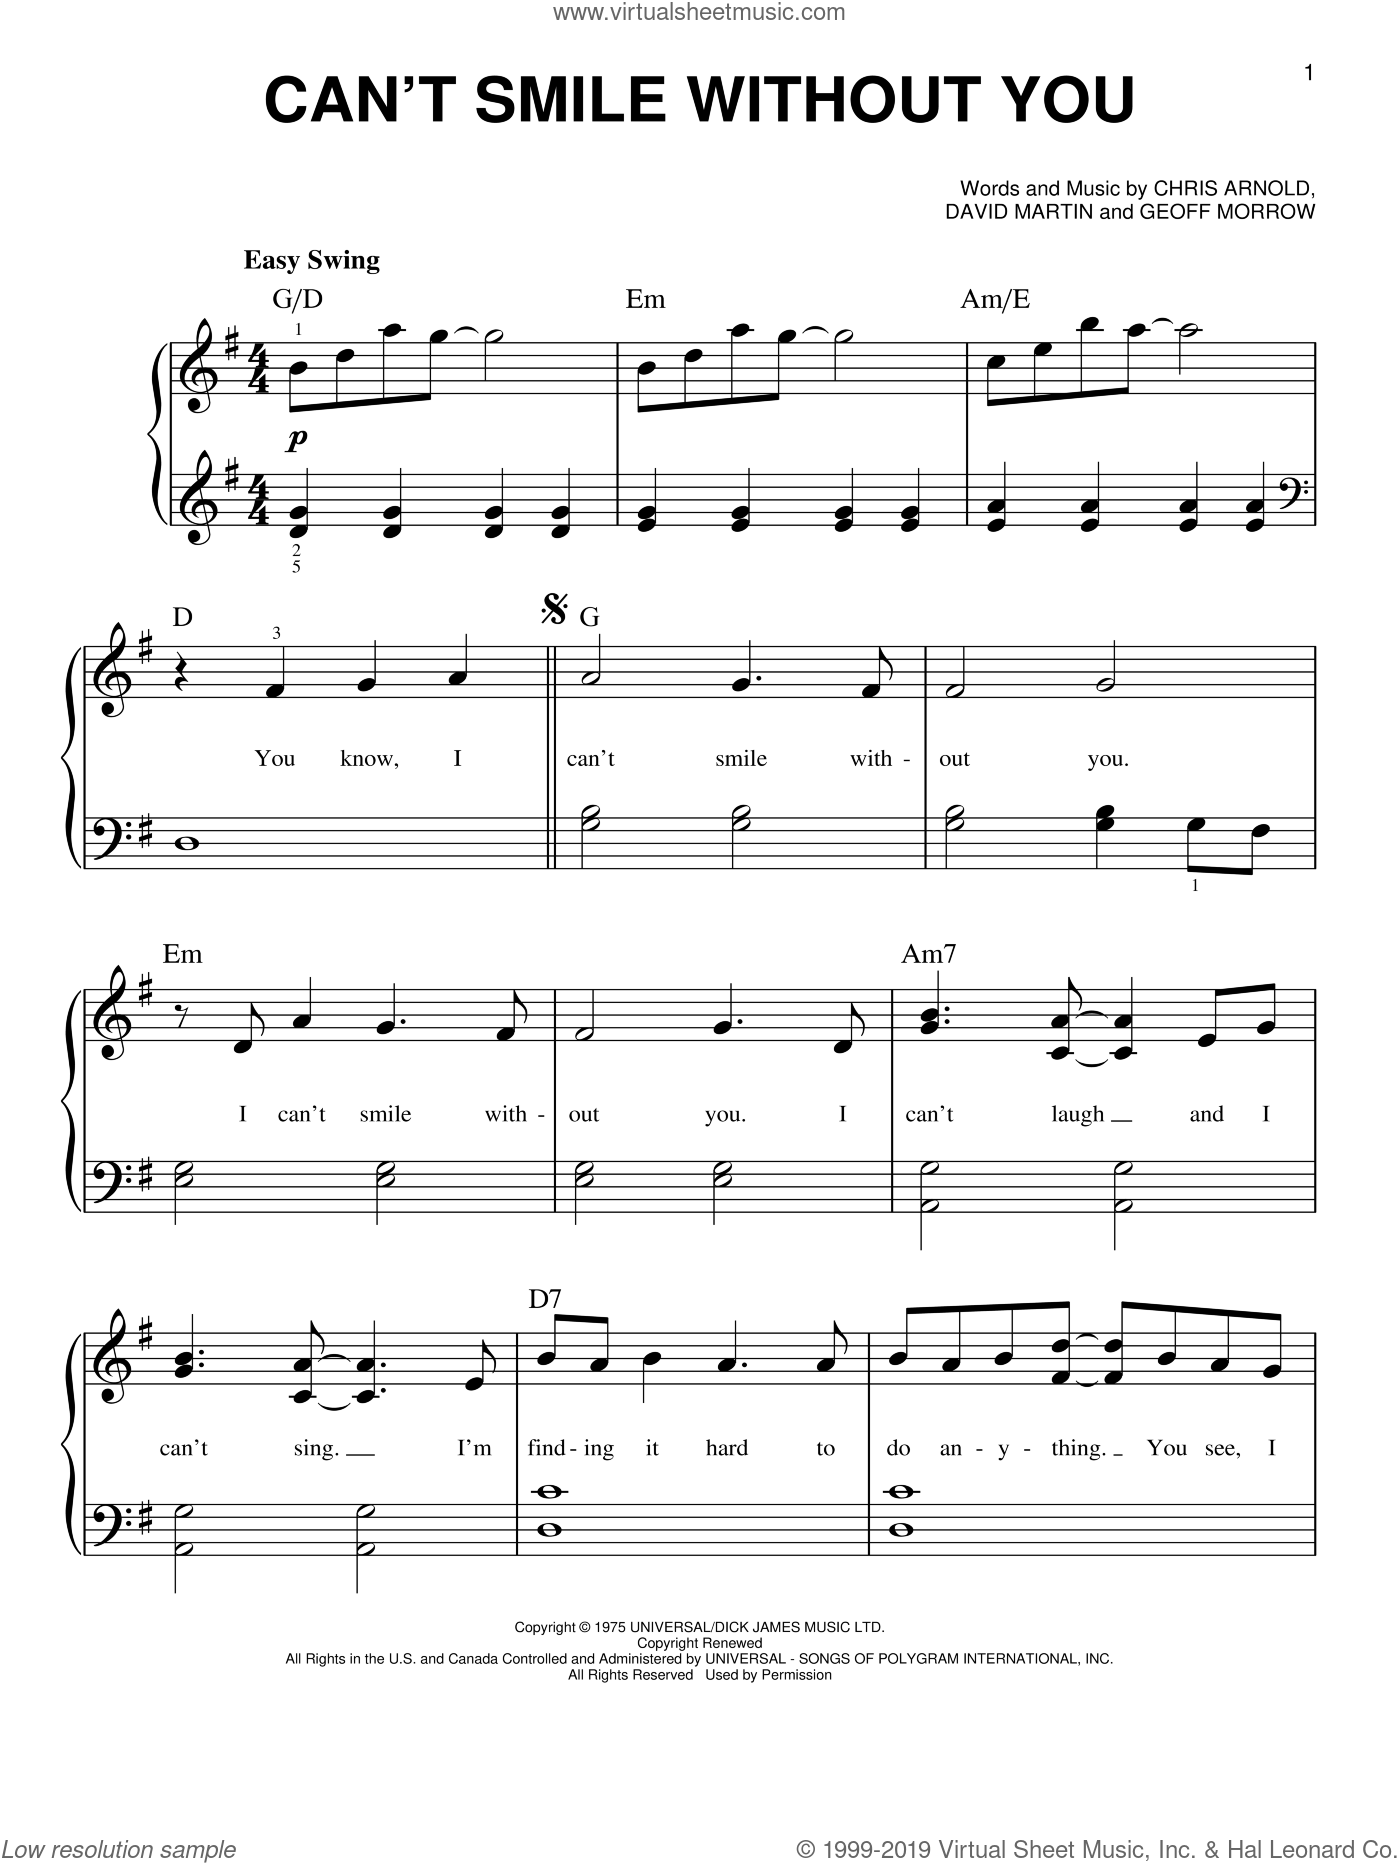 Can't Smile Without You sheet music for piano solo by Barry Manilow, Chris Arnold, David Martin and Geoff Morrow, easy skill level